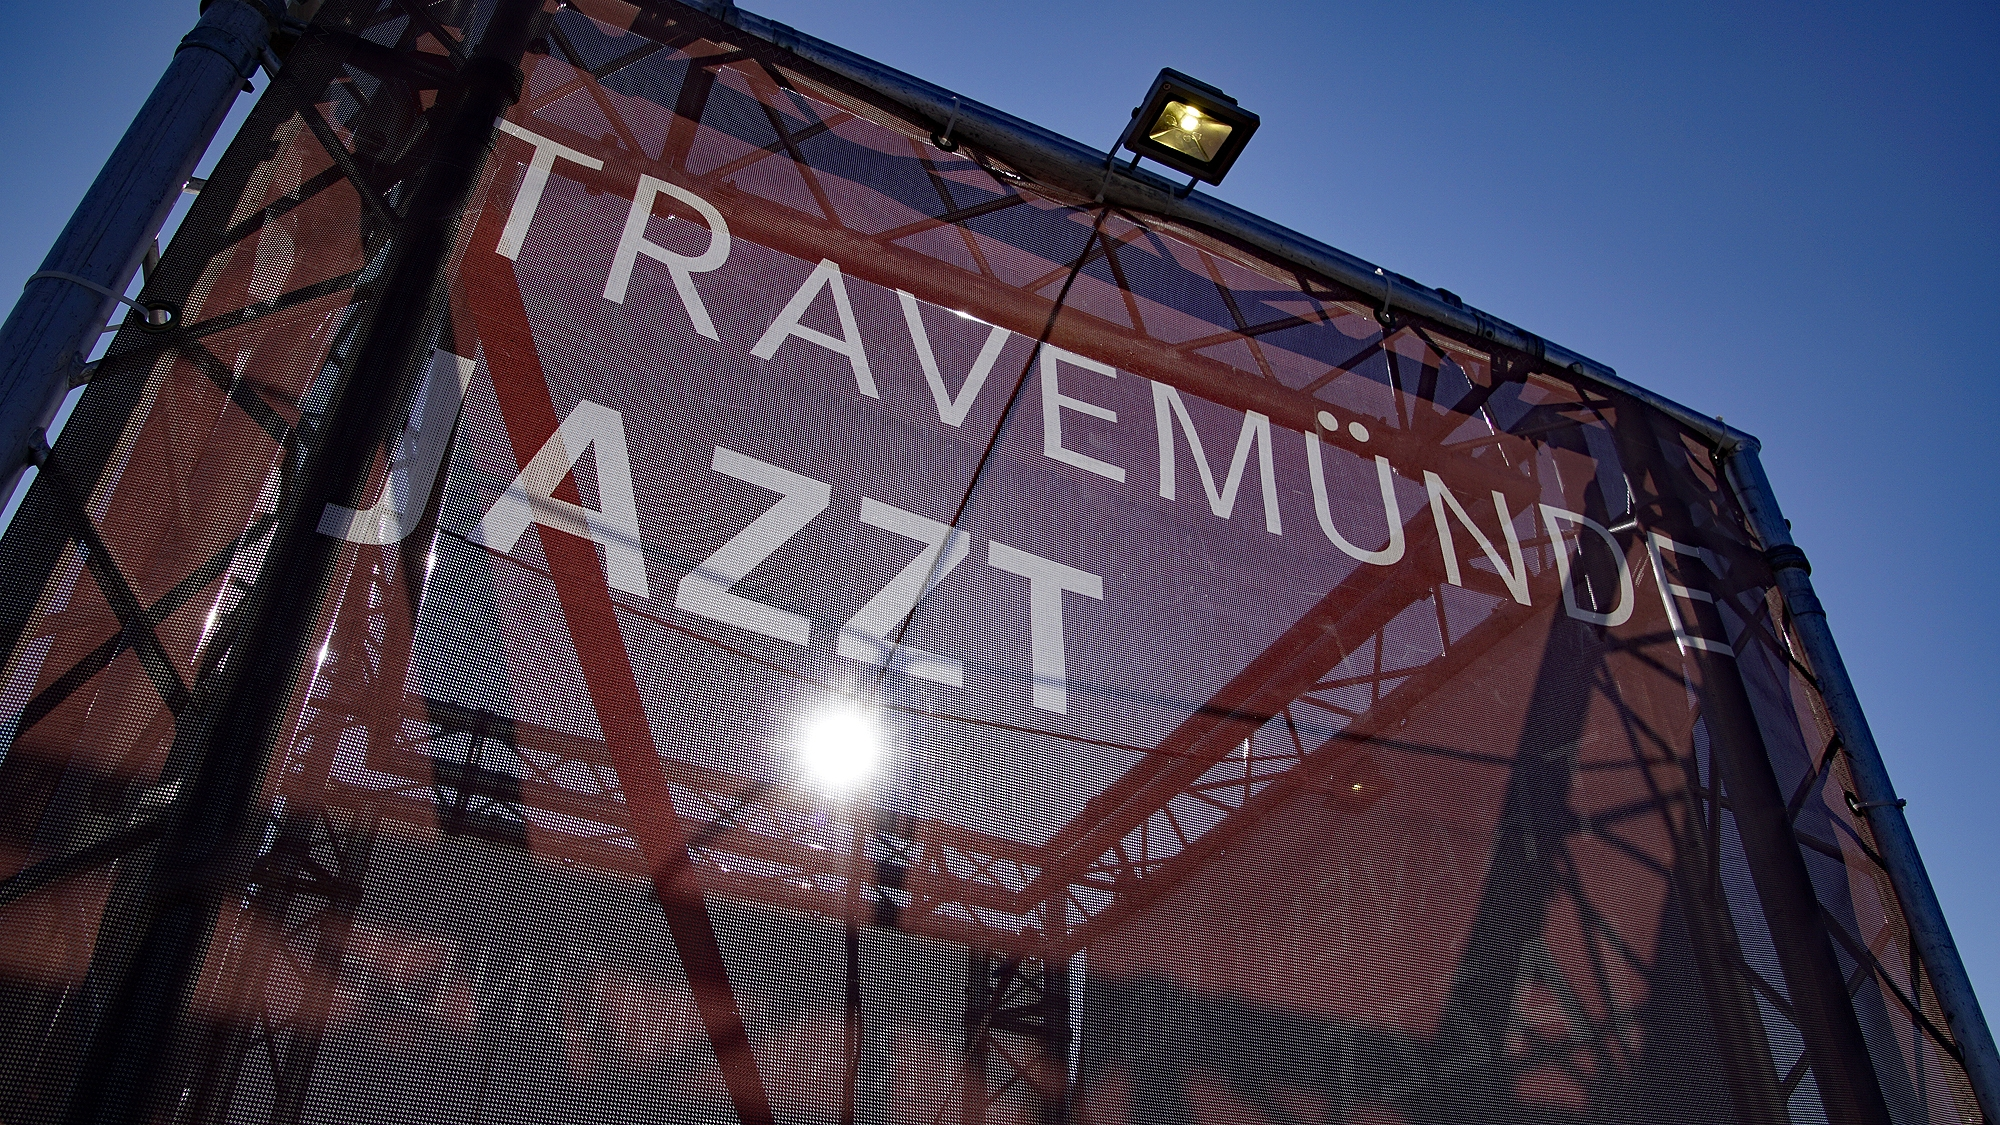 Travermünde Jazzt 2019 © TraveMedia